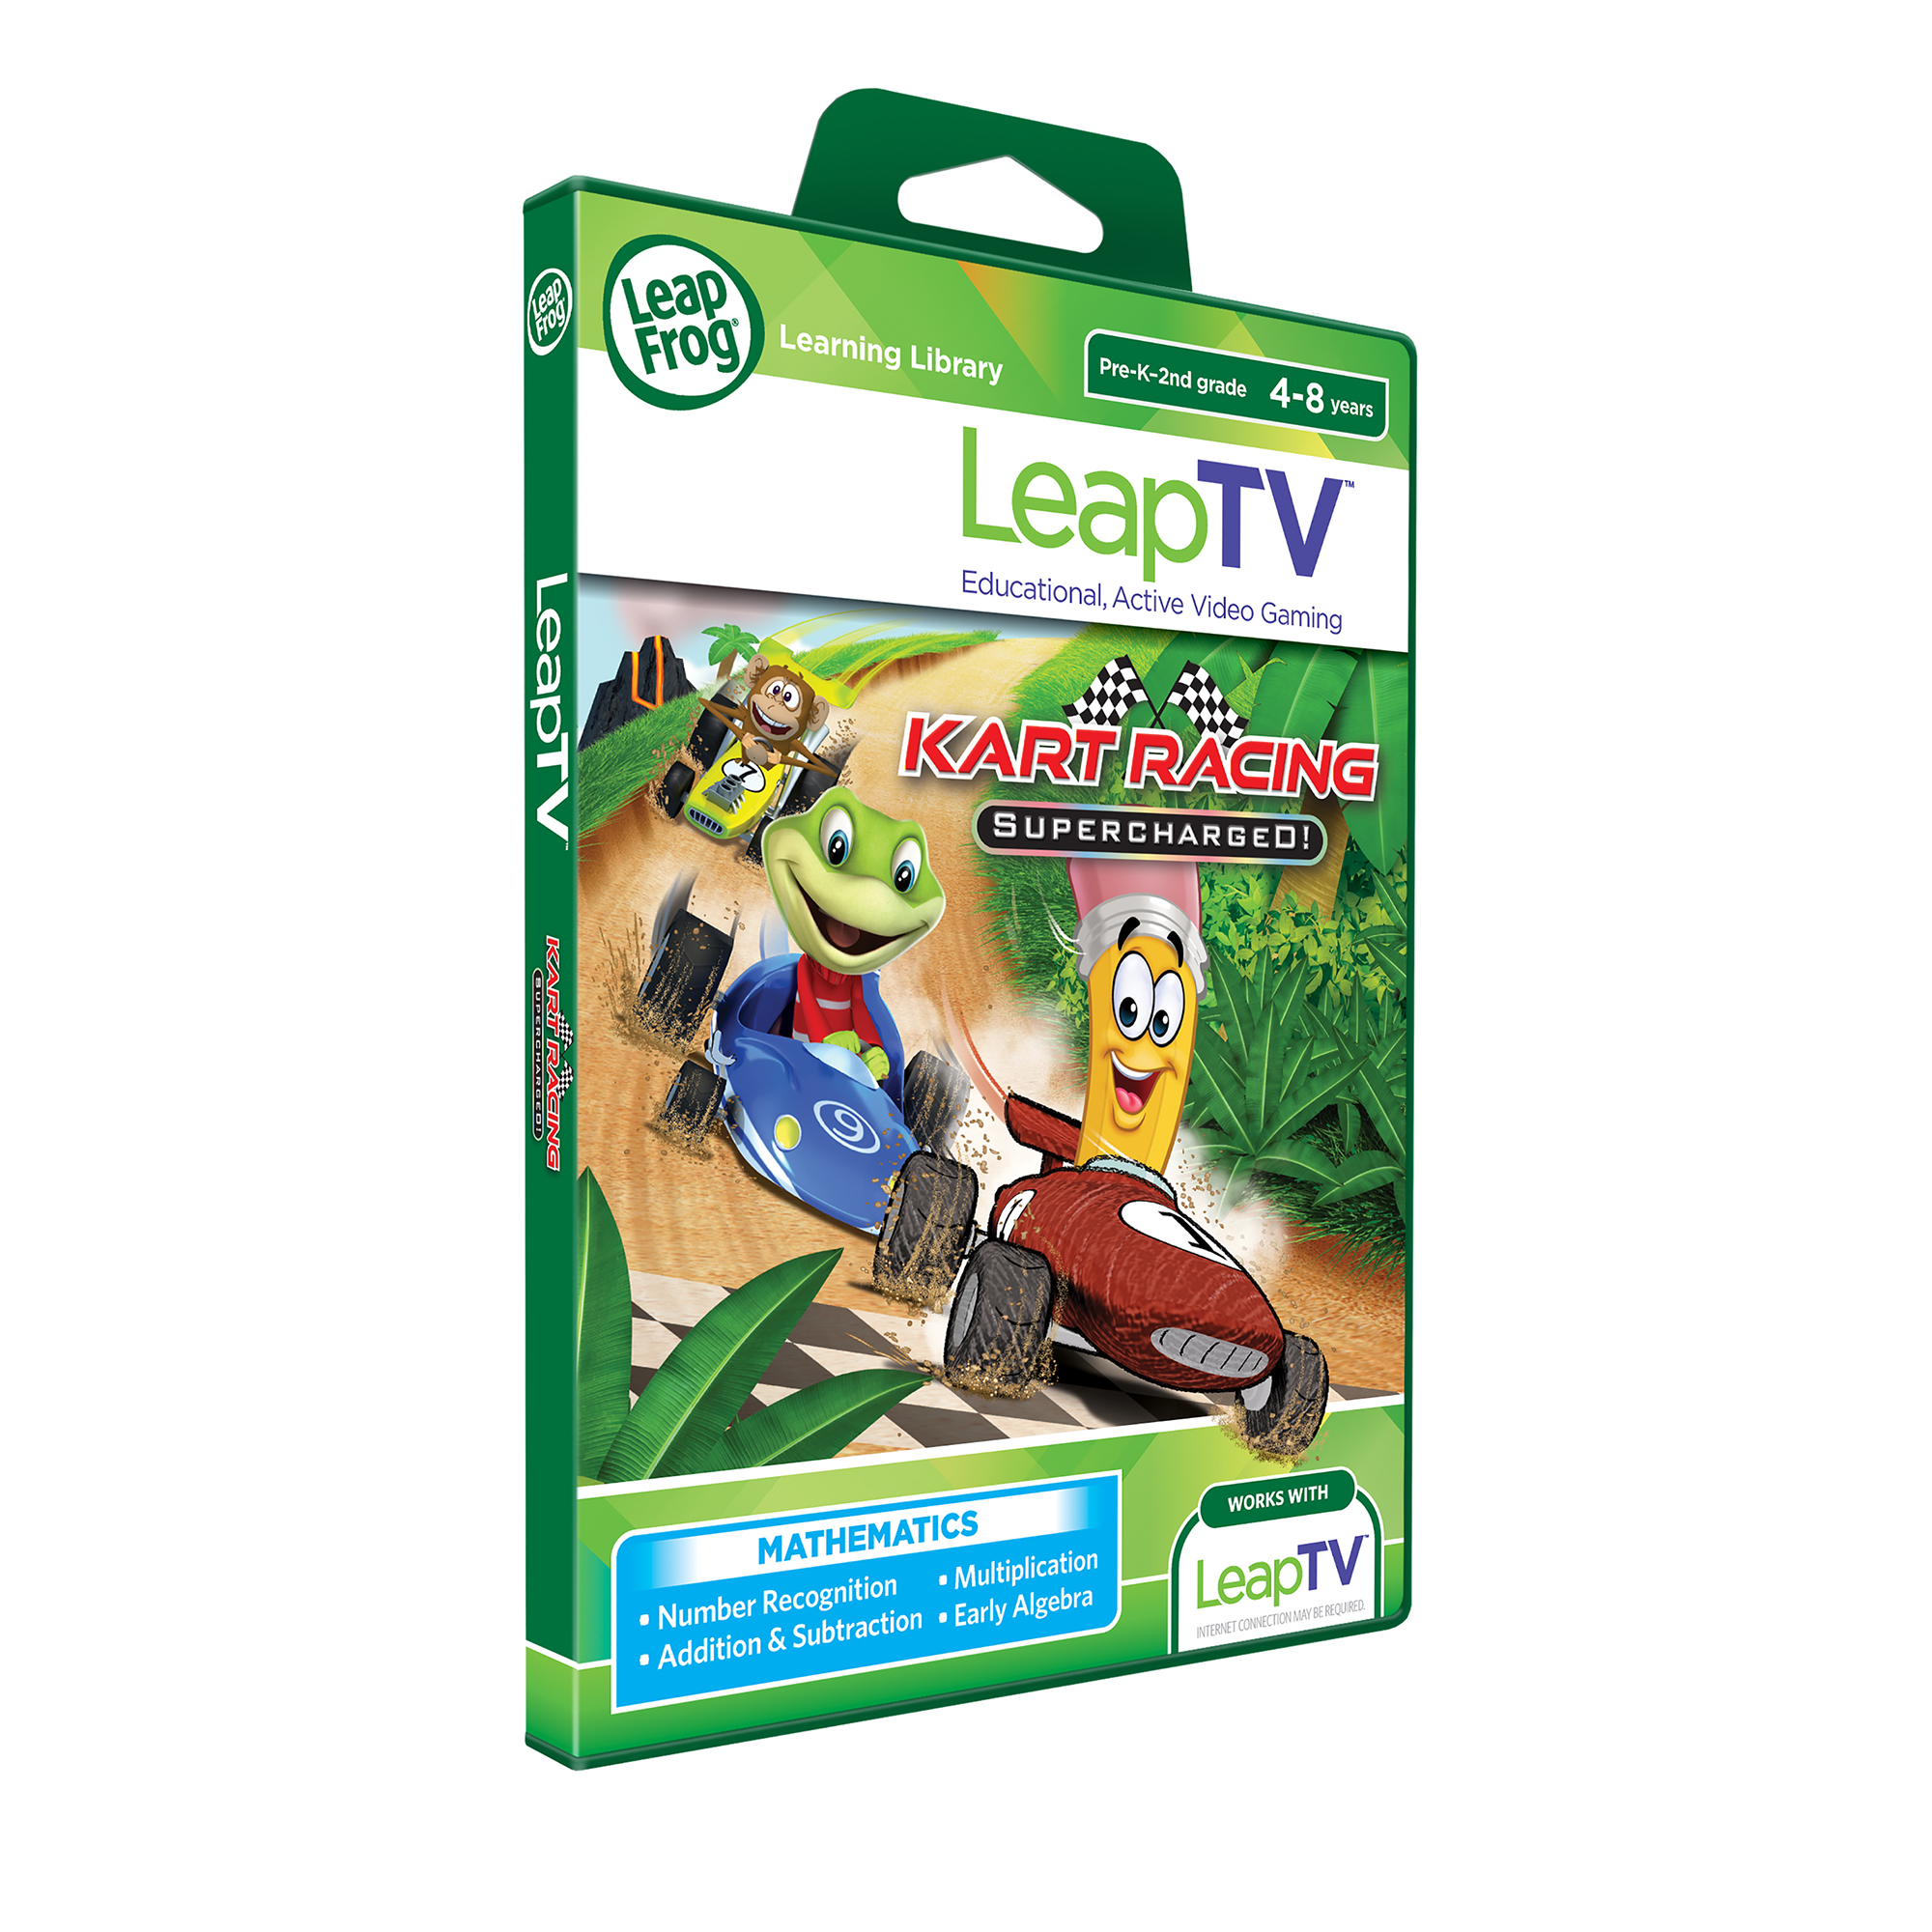 Picture of LeapFrog Kart Racing LeapTV Software